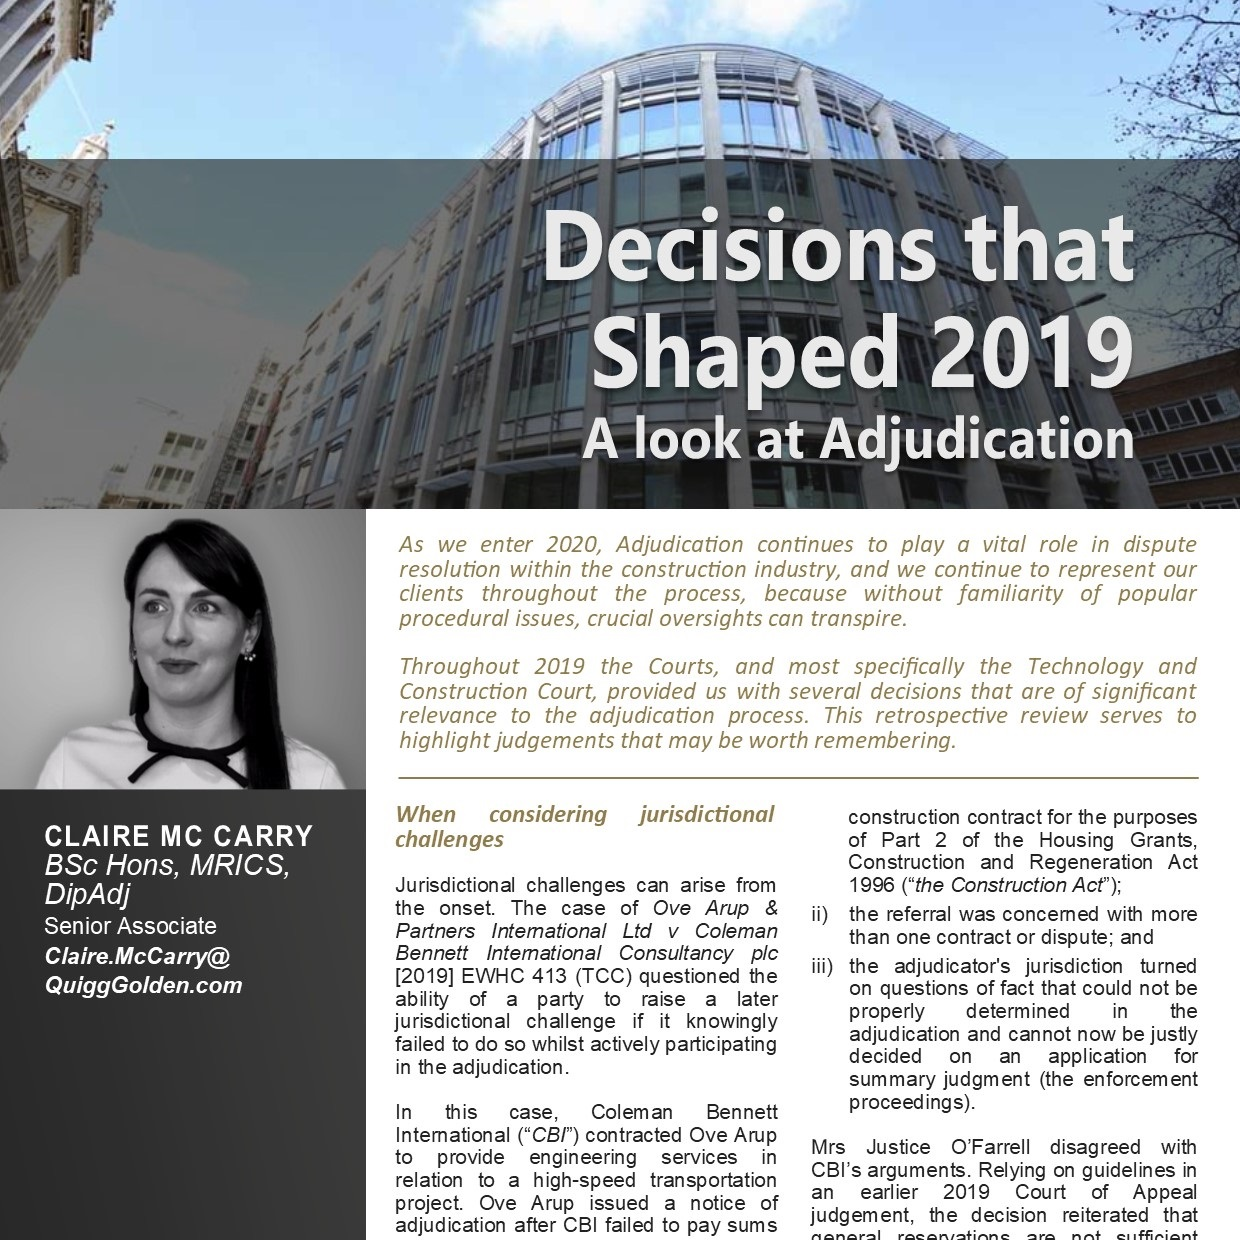 Article PDF link - Decisions that Shaped 2019 - Adjudication